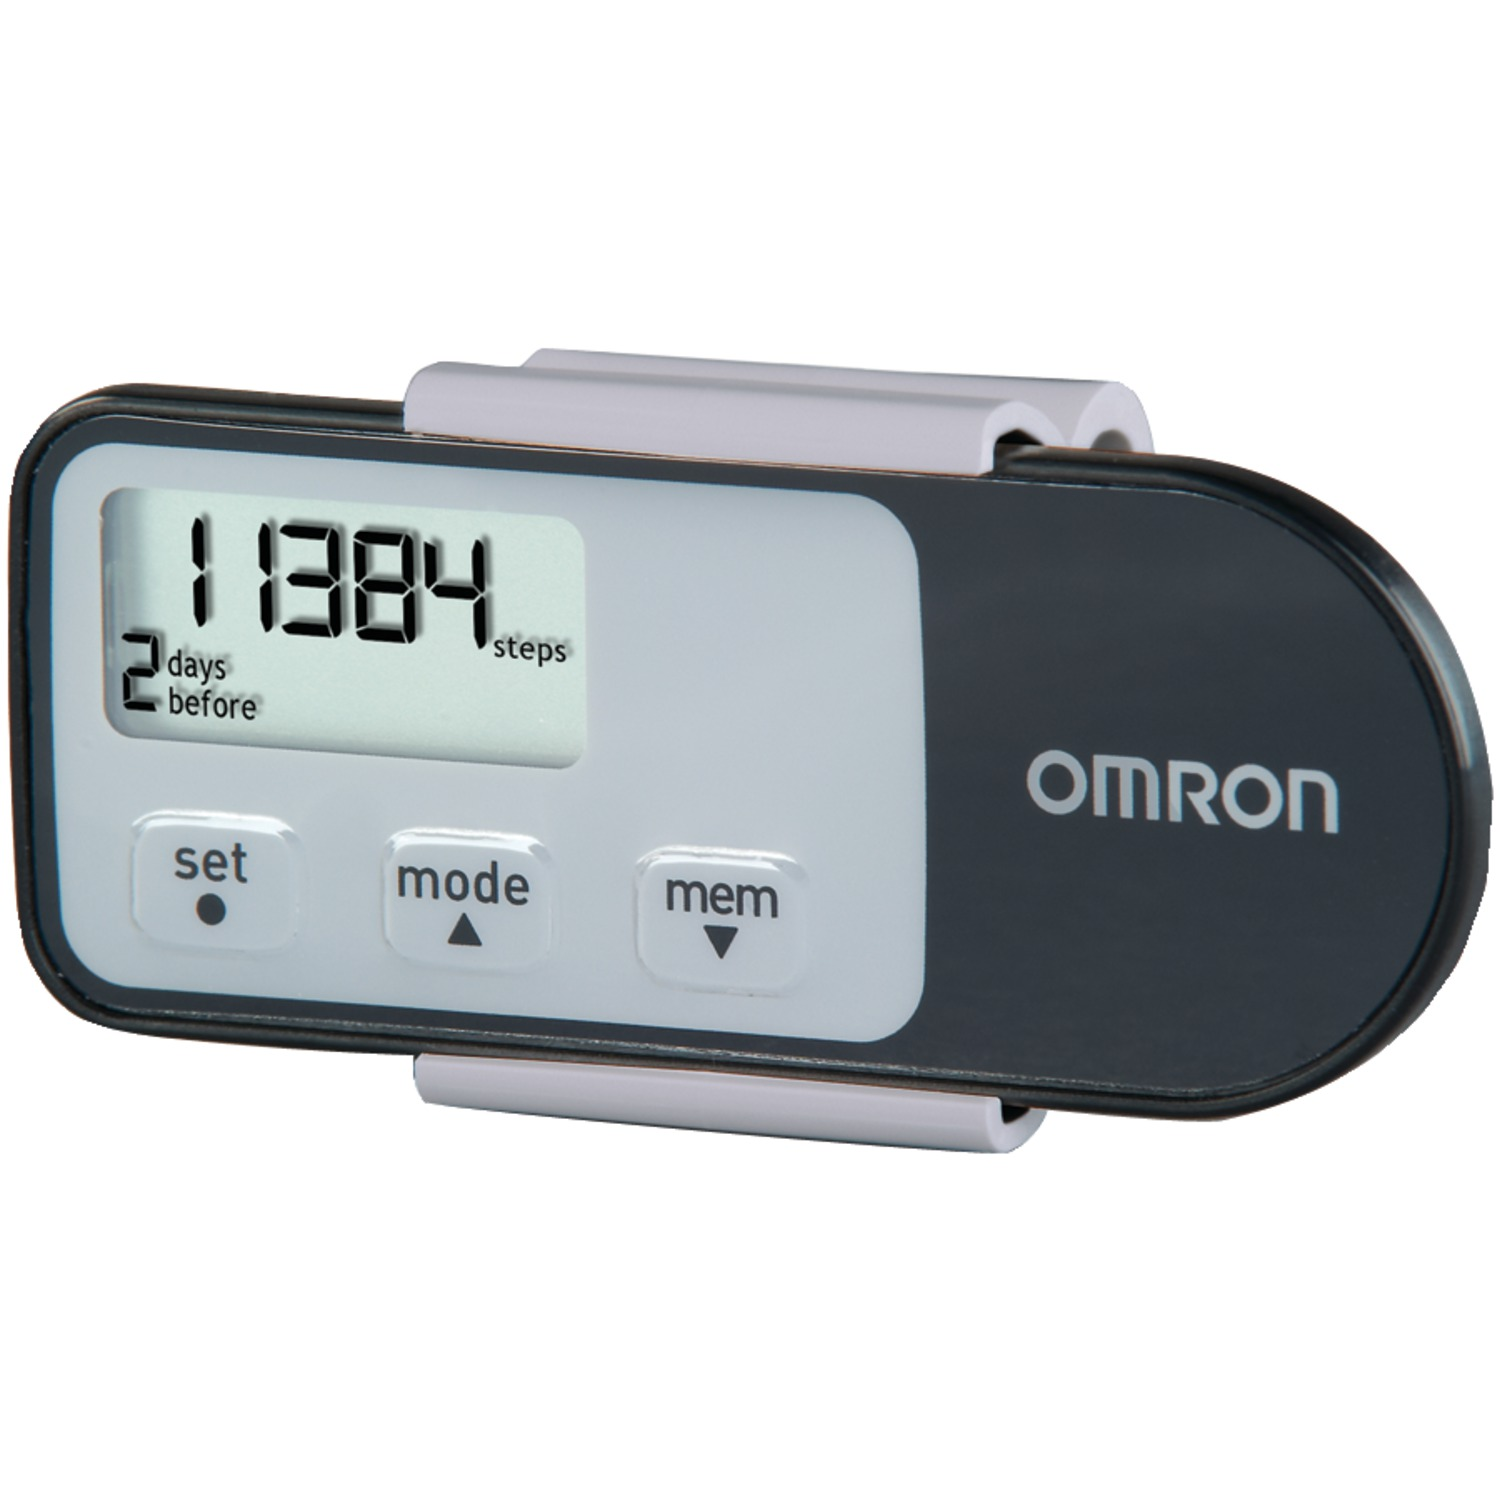 Image for Omron Alvita Optimized Activity Tracker from Circuit City